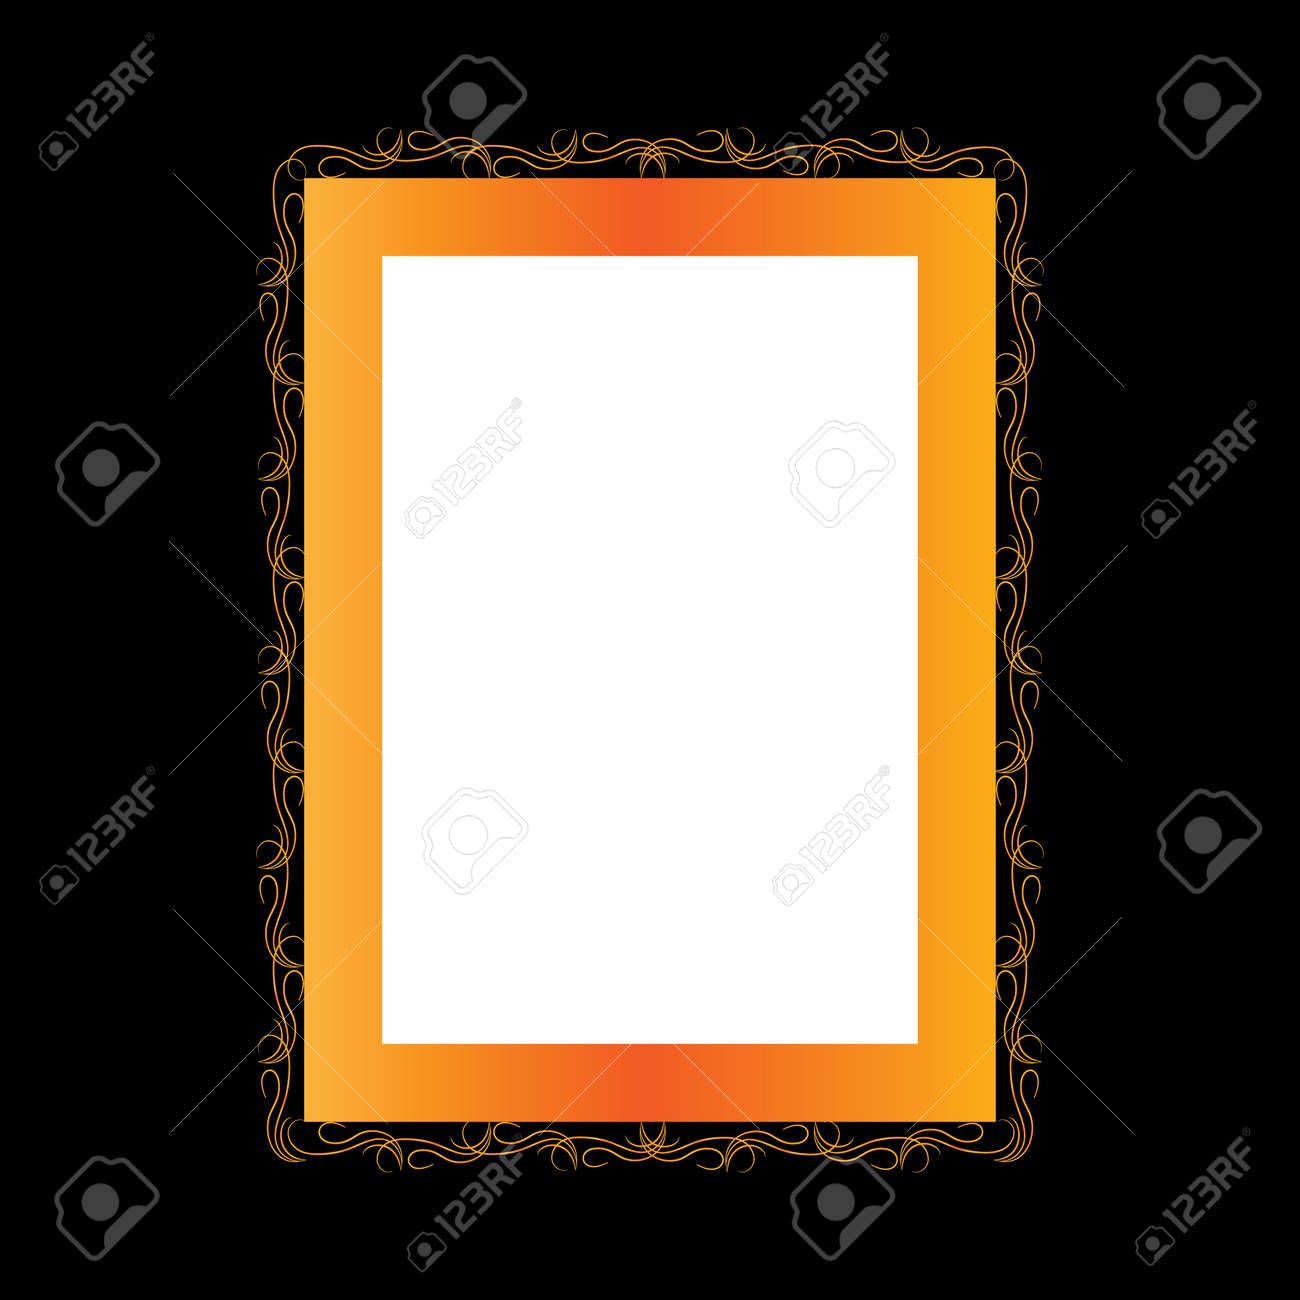 Frame with wavy line for pfoto. Vector. - 159702365